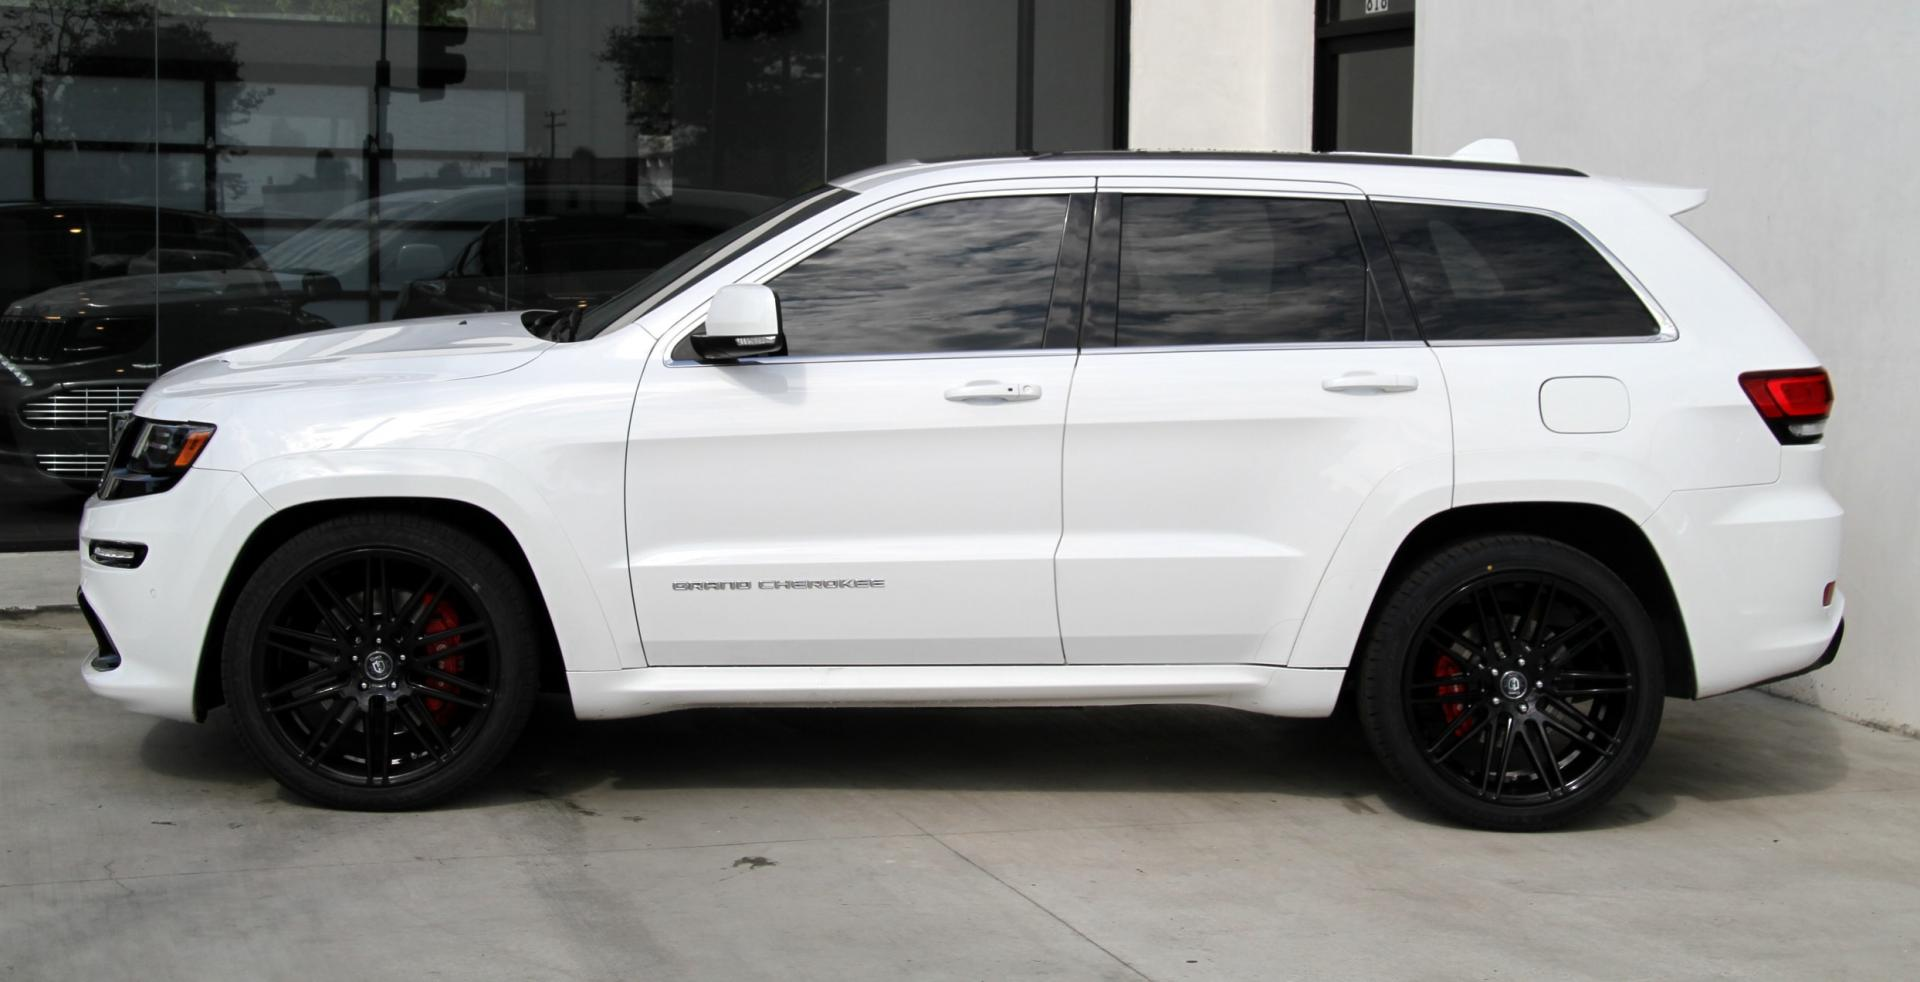 2014 jeep grand cherokee srt 4x4 stock 5976 for sale near redondo beach ca ca jeep dealer. Black Bedroom Furniture Sets. Home Design Ideas